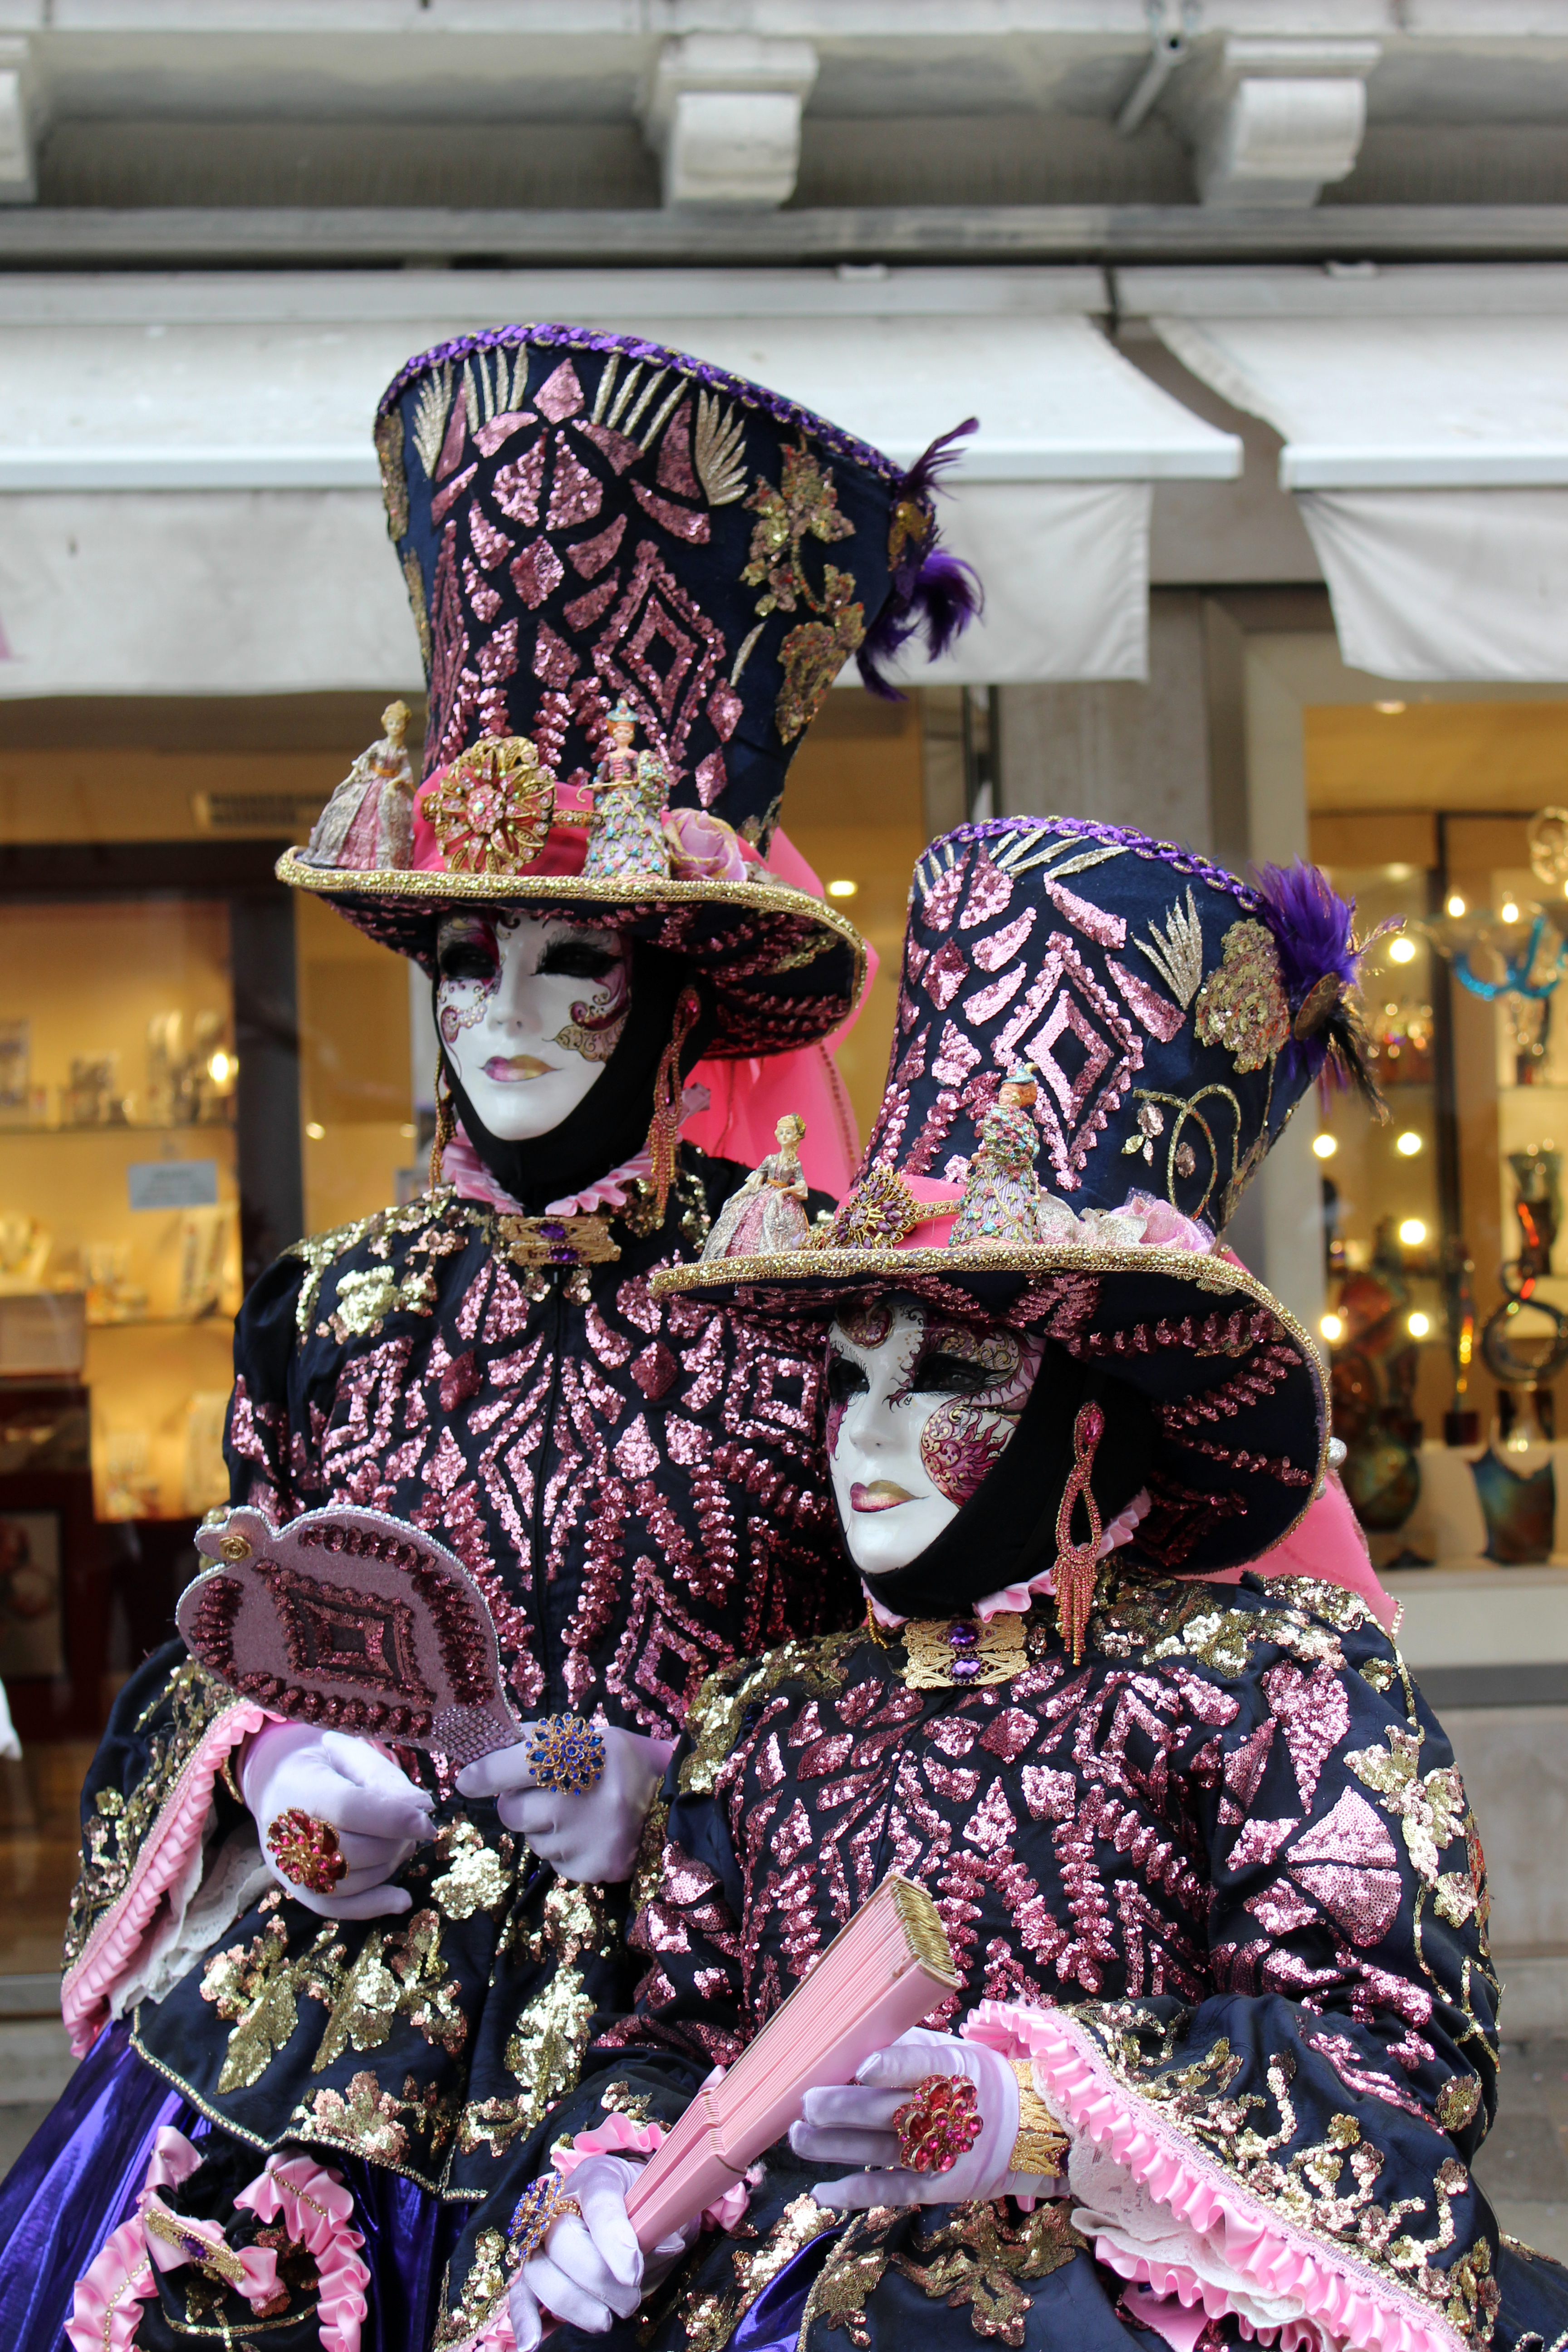 Matching Purple Masquerades in Venice Italy during Carnevale